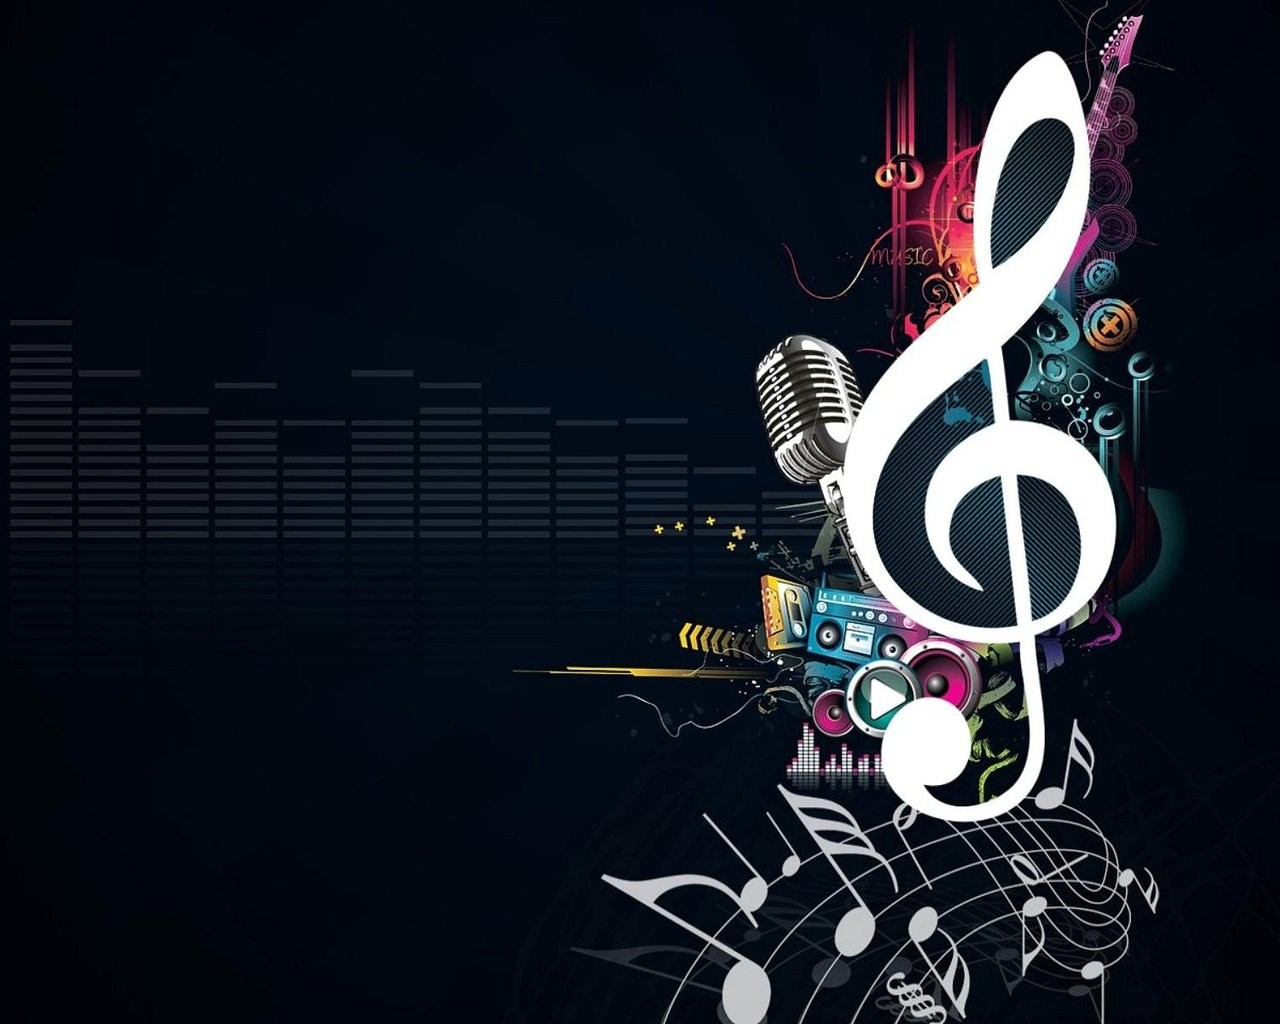 Cool Music Backgrounds 8332 Hd Wallpapers 939